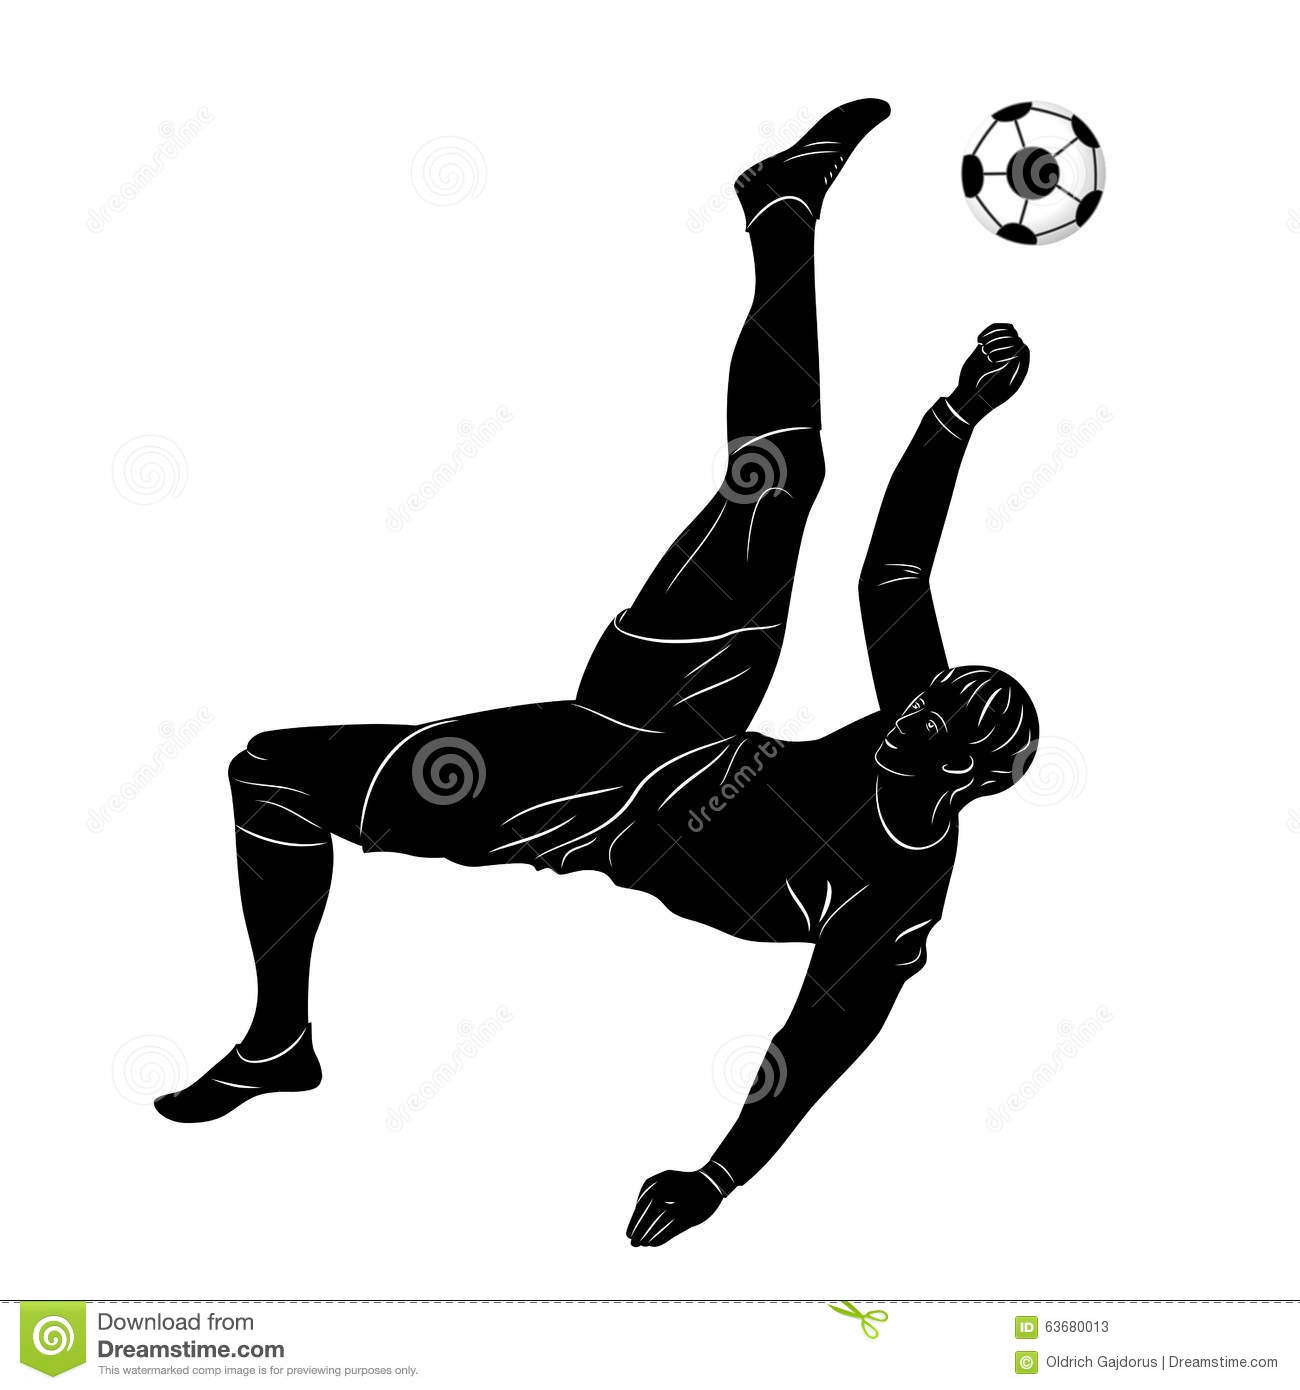 Silhouette football player stock vector. Illustration of ...